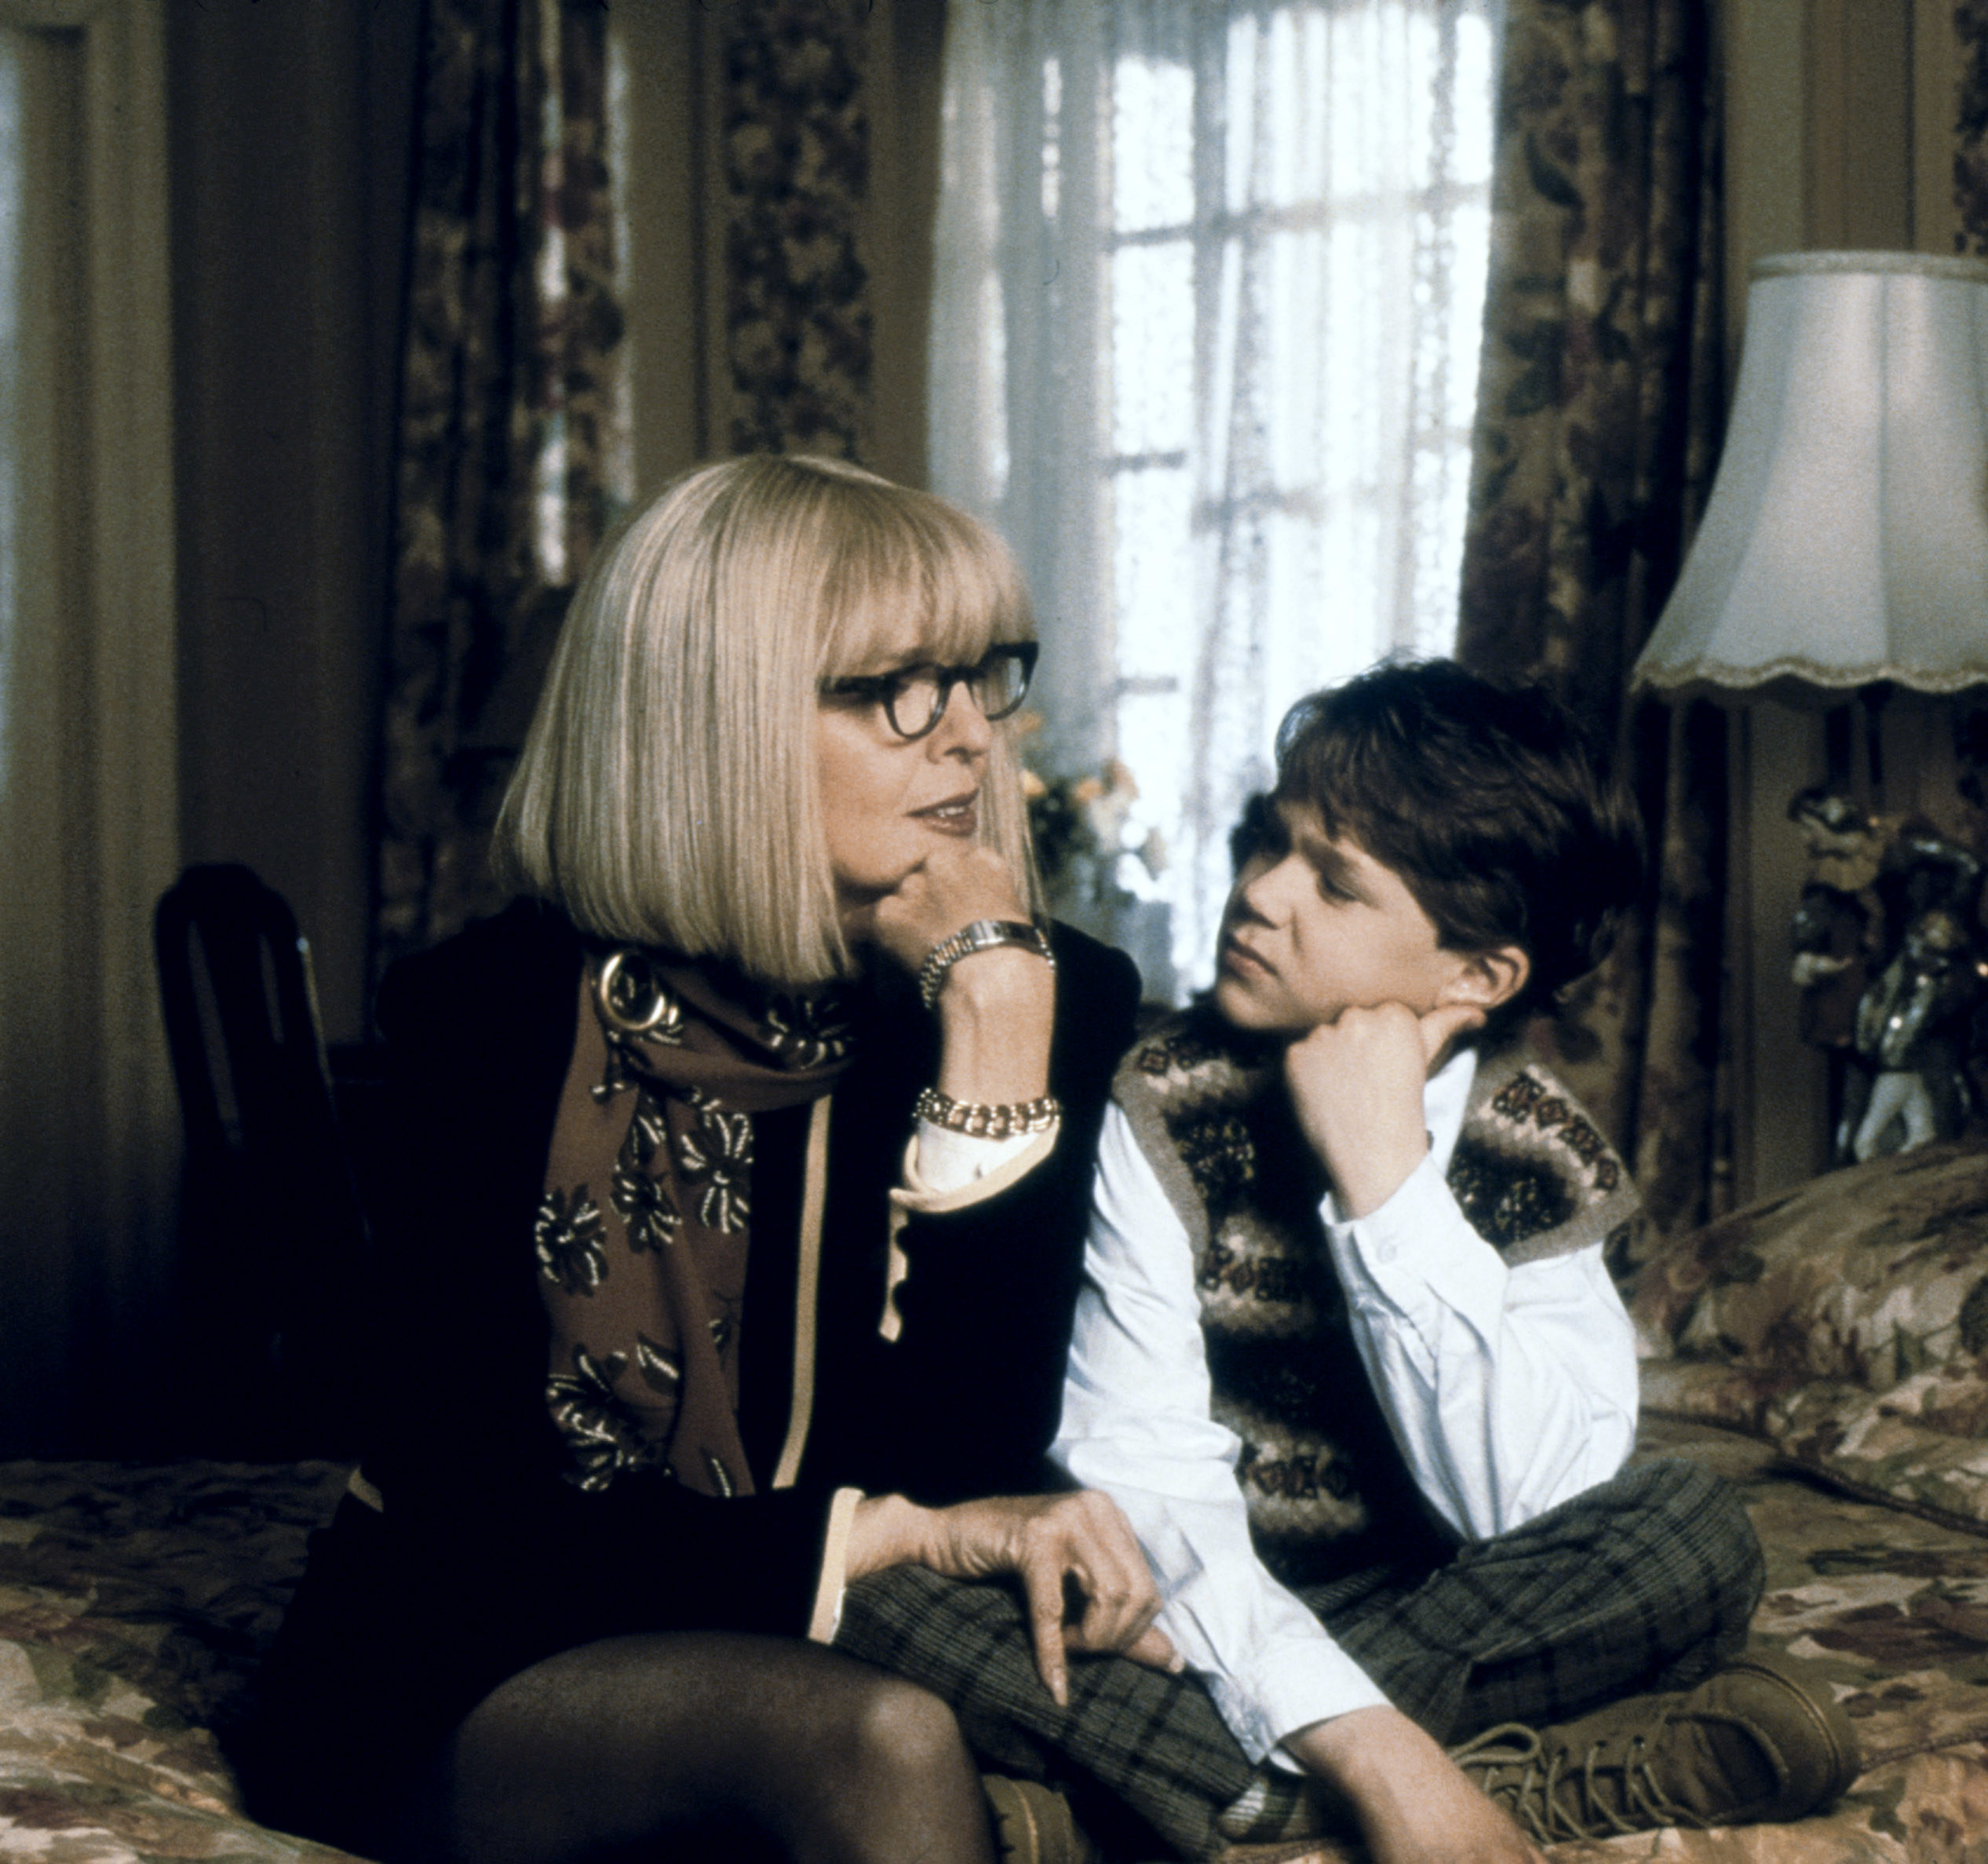 Diane Keaton in a blonde bob cut sitting on a bed next to a little boy looking at her